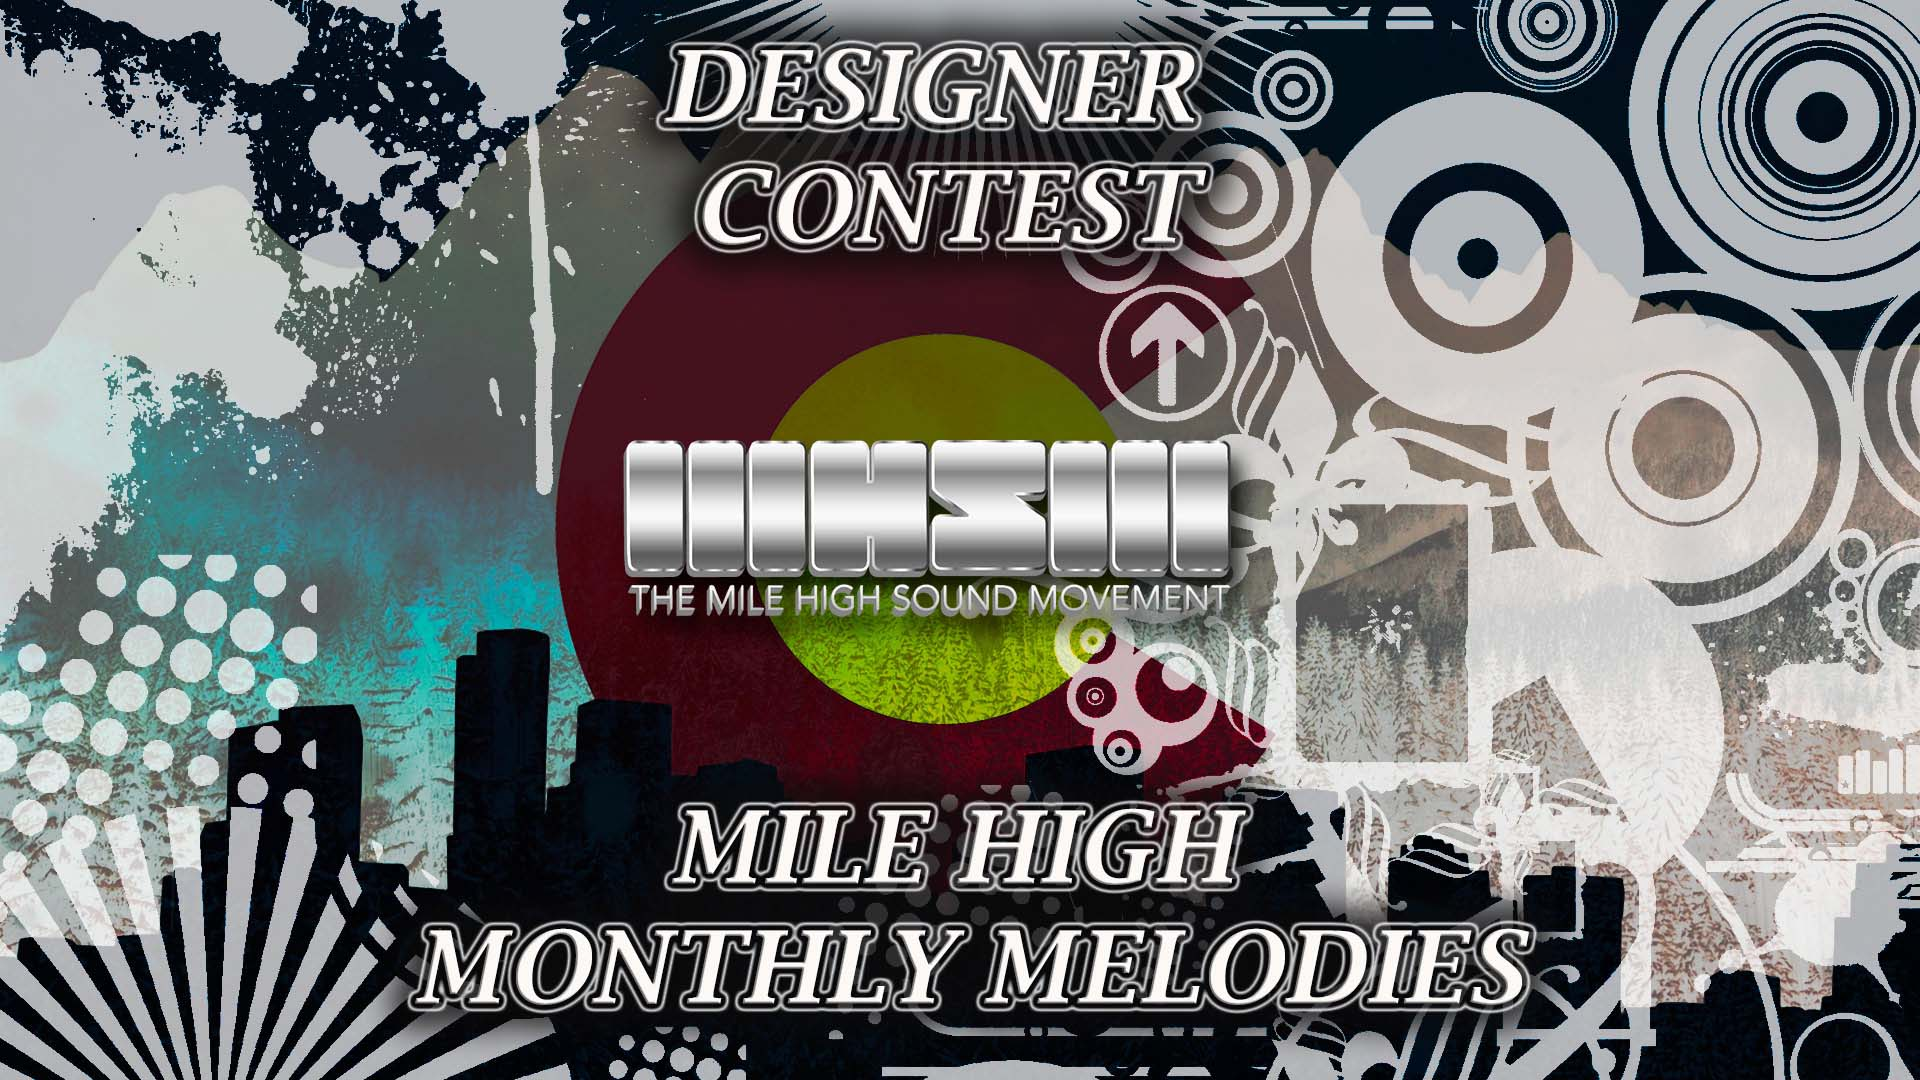 Graphic Designer Contest For Mile High Monthly Melodies